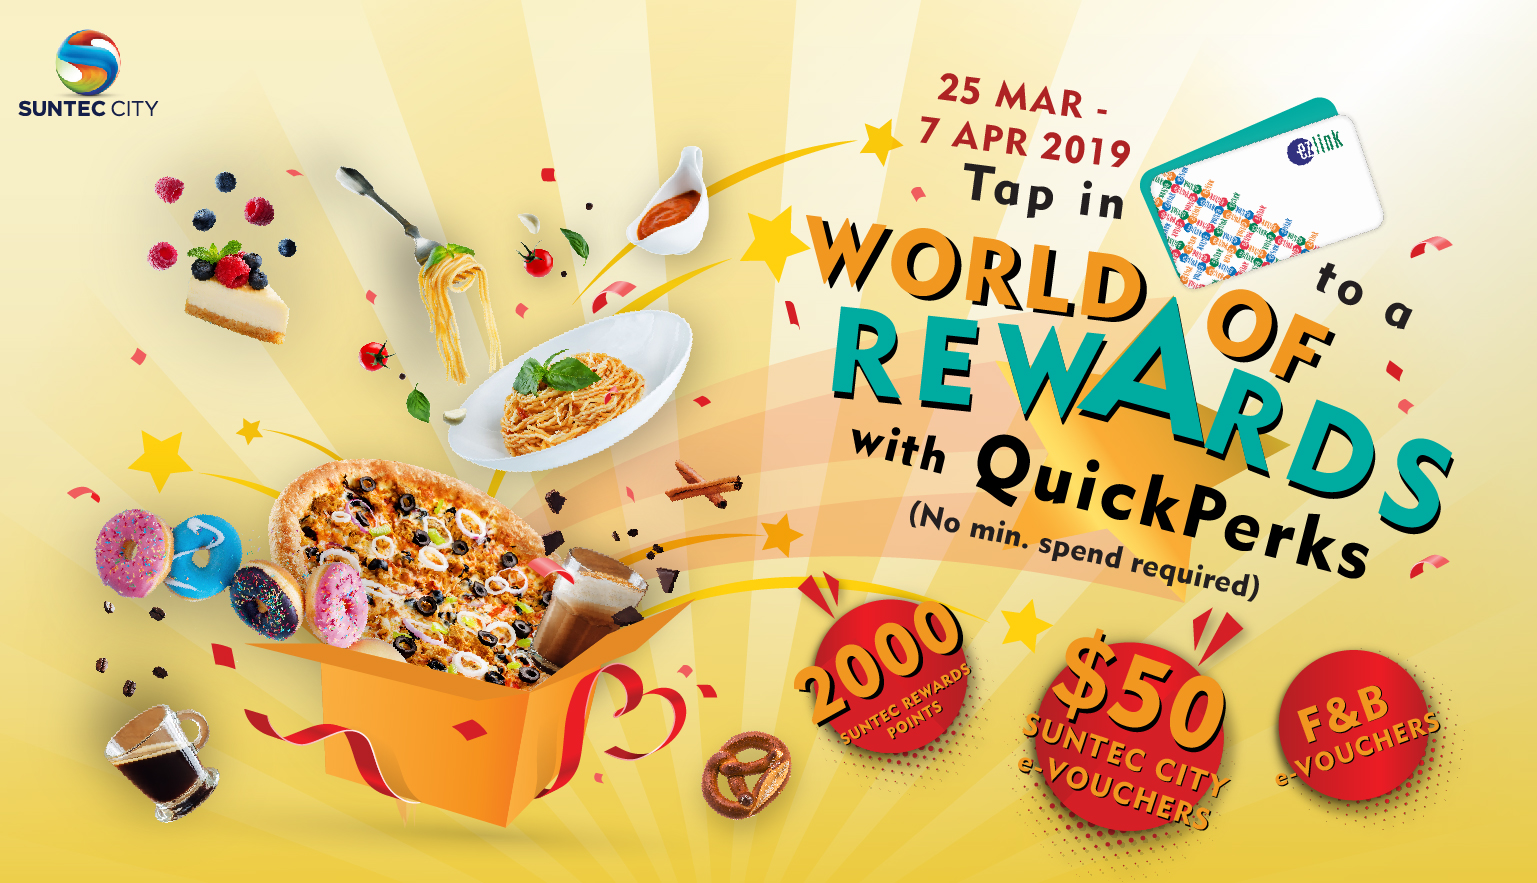 eb7c7ca5c05448 Stand to win up to  50 Suntec City e-voucher when you tap in at Suntec  City s QuickPerks Kiosk with no purchase required!